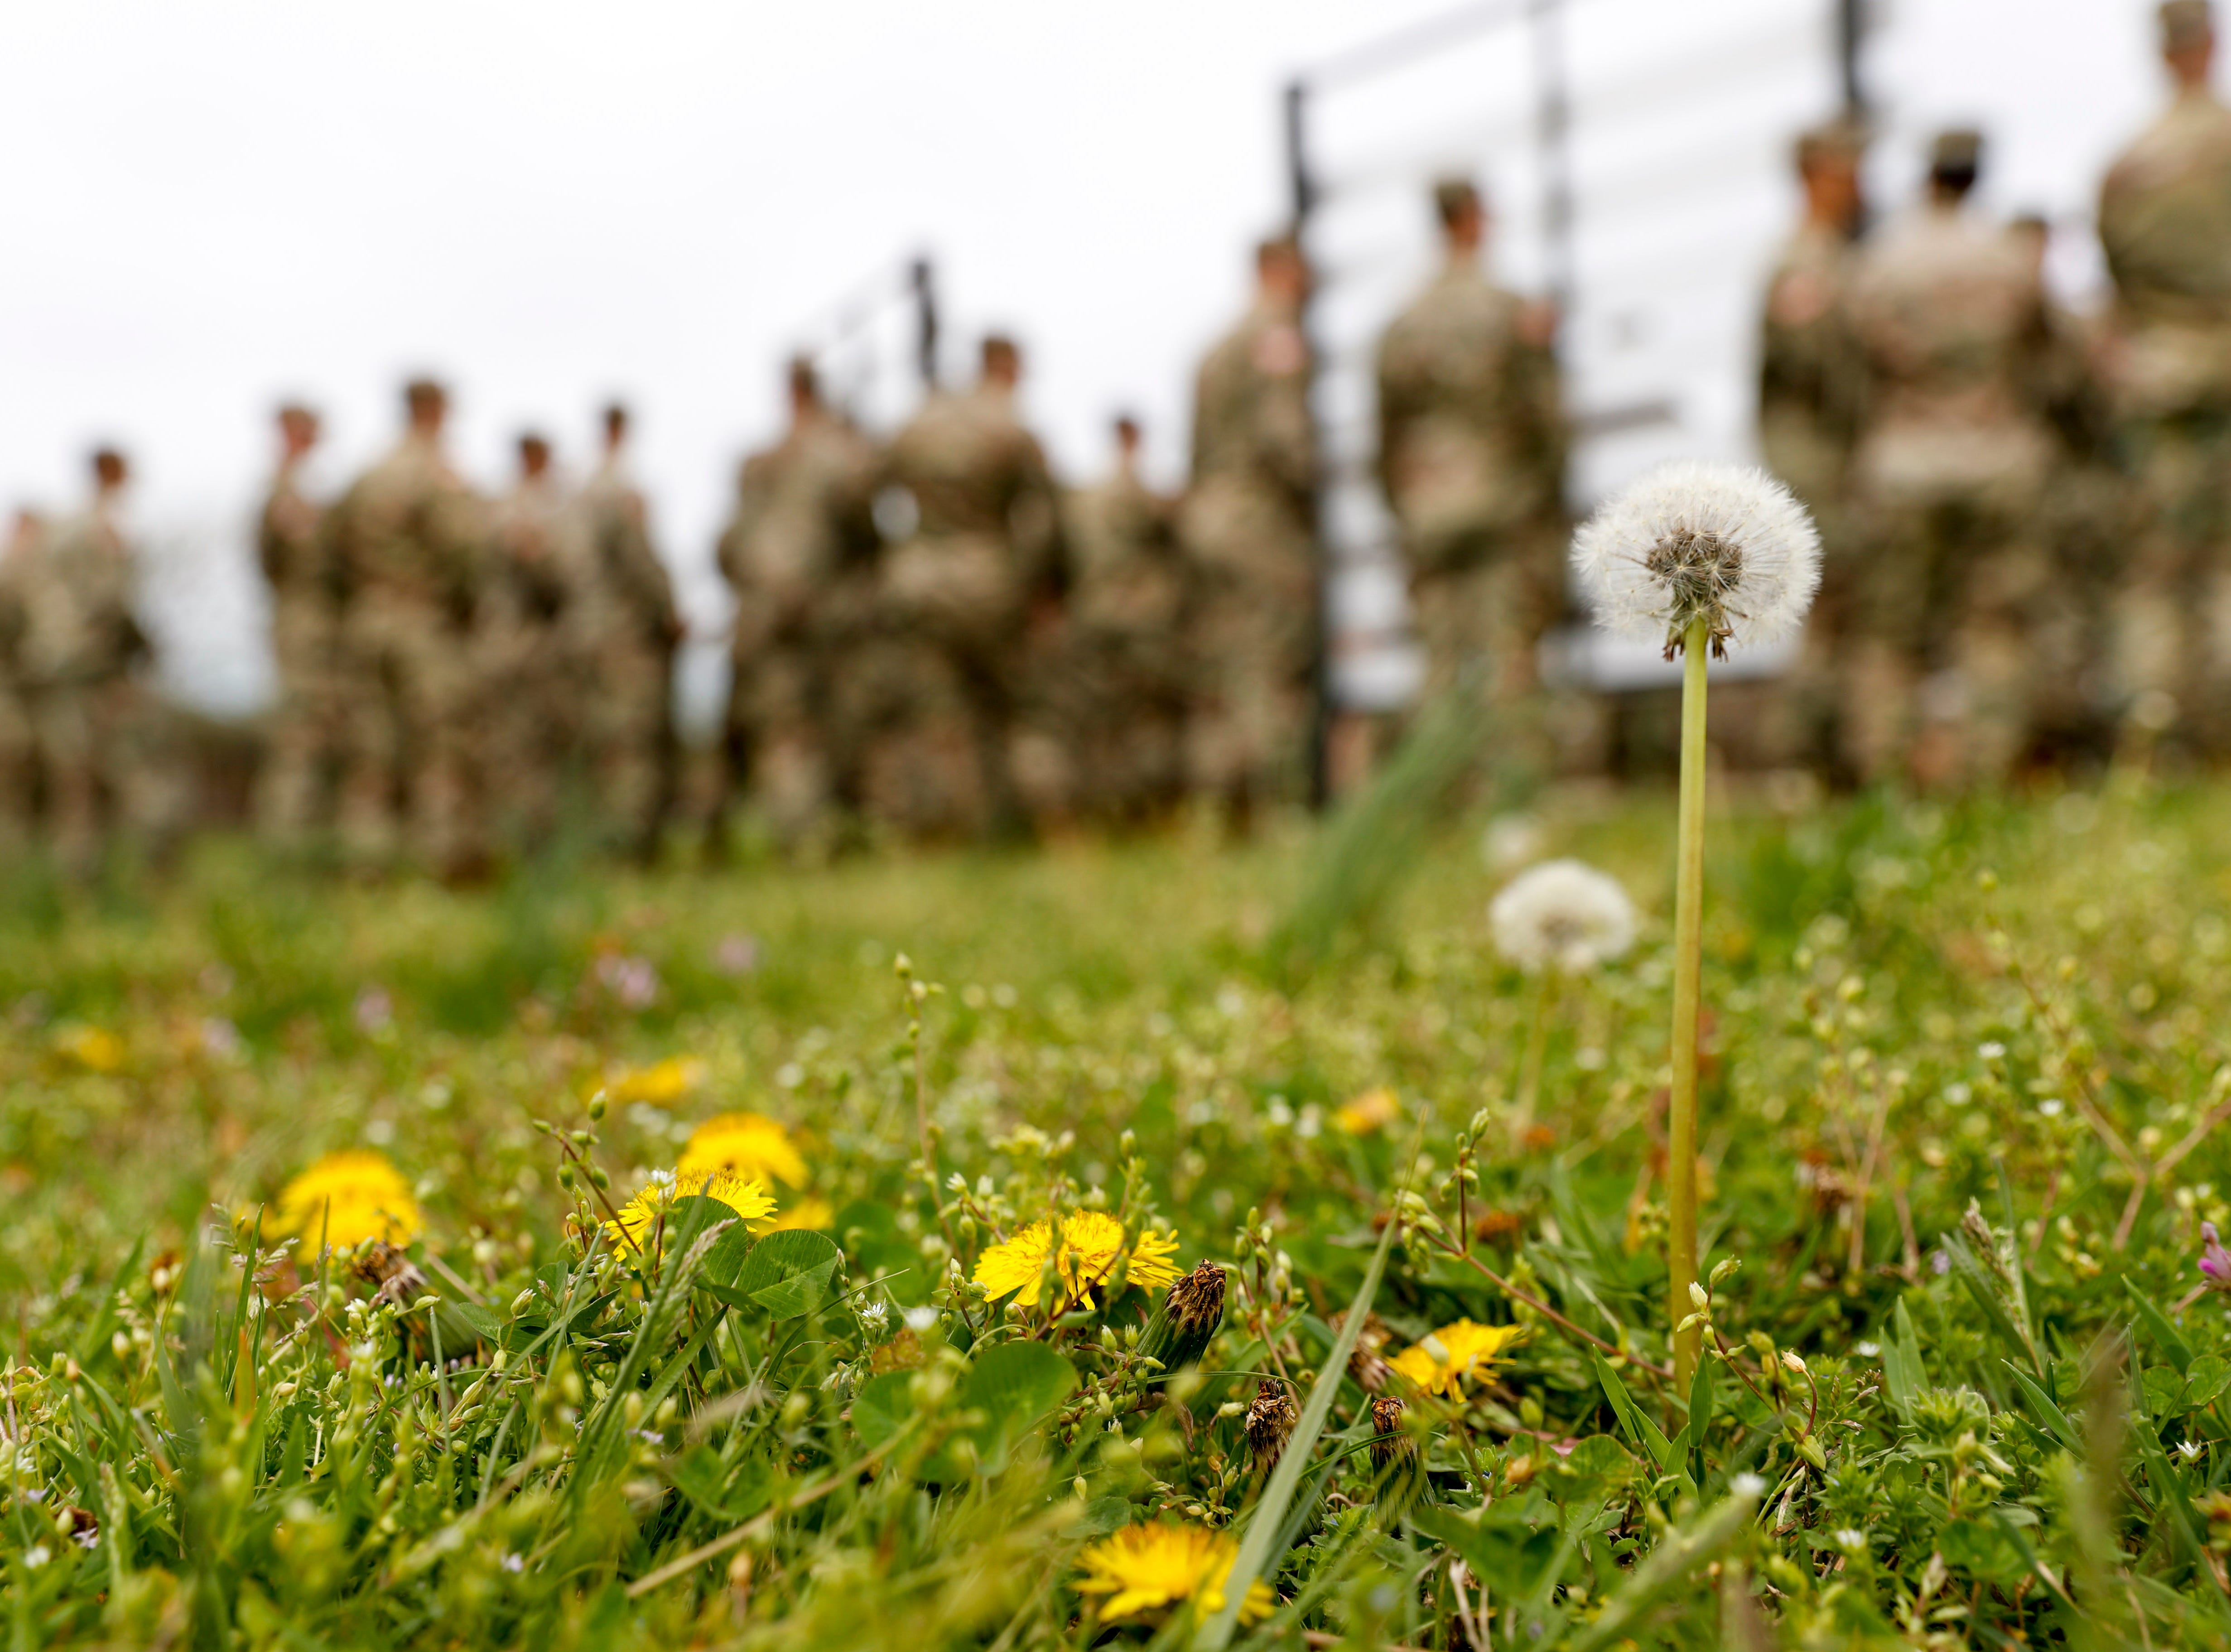 Dandelions bloom in the grass surrounding the site of a colors casing ceremony prior to deployment for Ukraine at 2 BCT Headquarters in Fort Campbell, KY., on Friday, April 12, 2019.